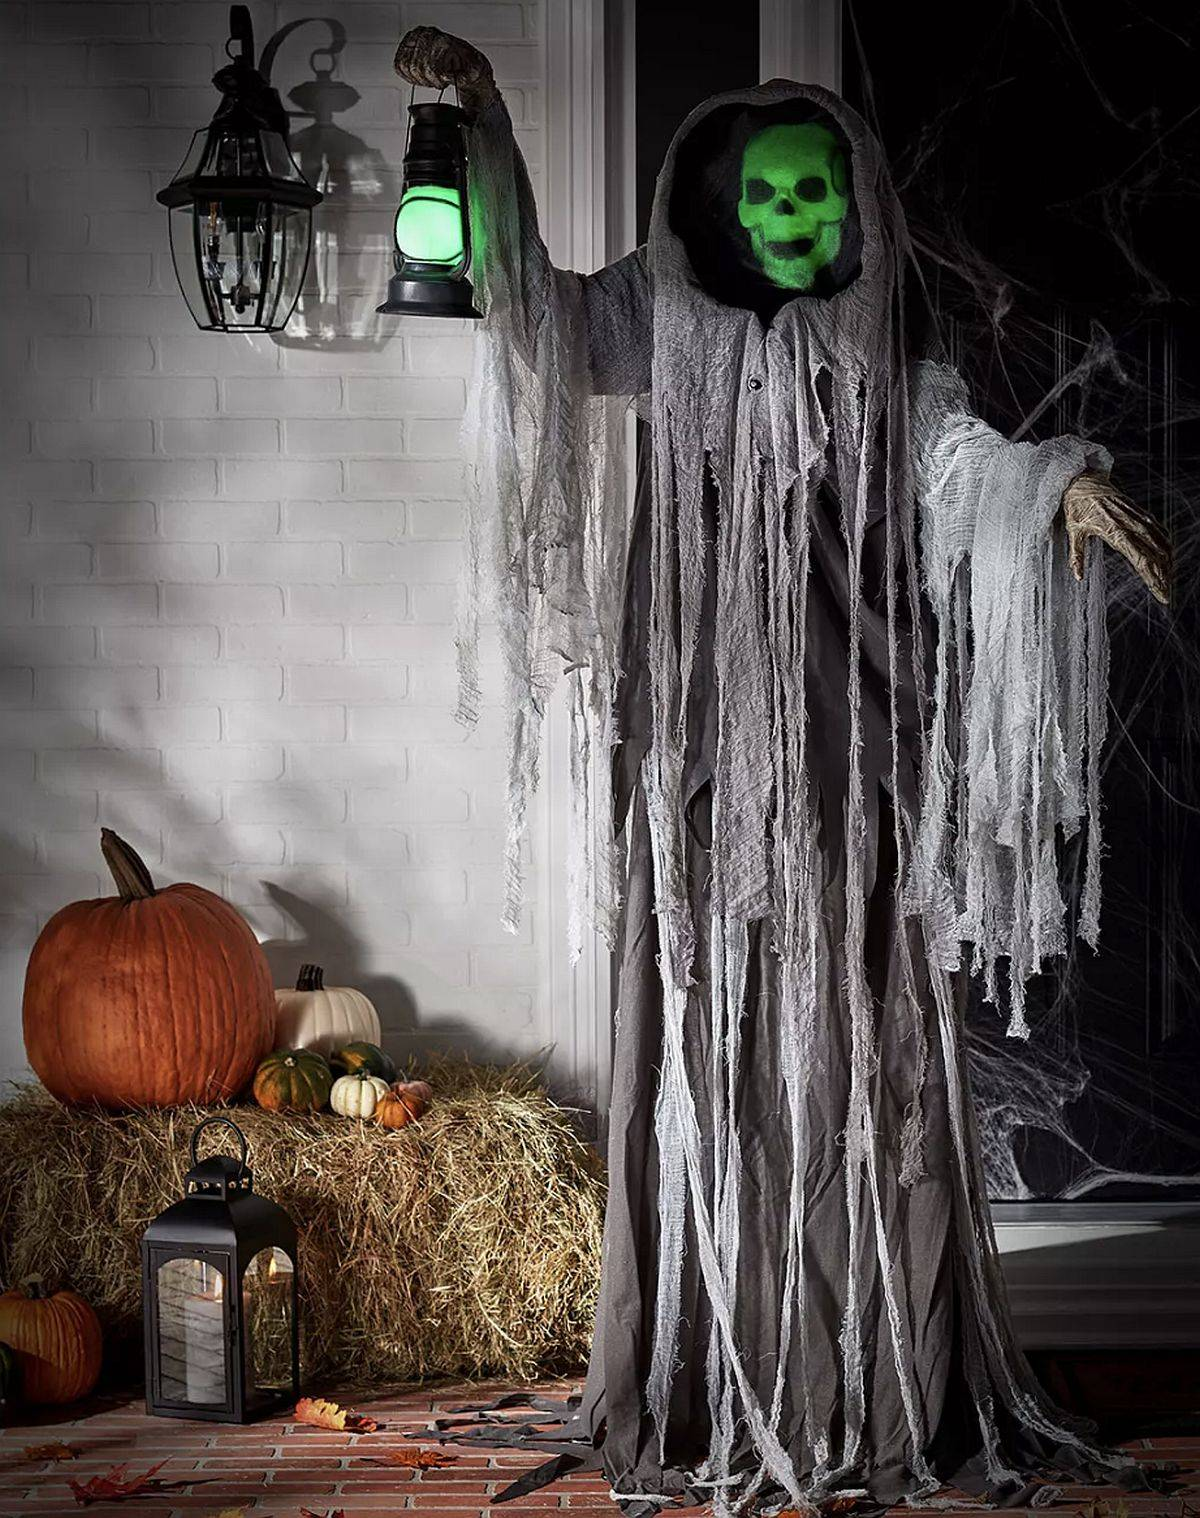 Going old school with Halloween decorations adds an additional pizzazz to your celebrations